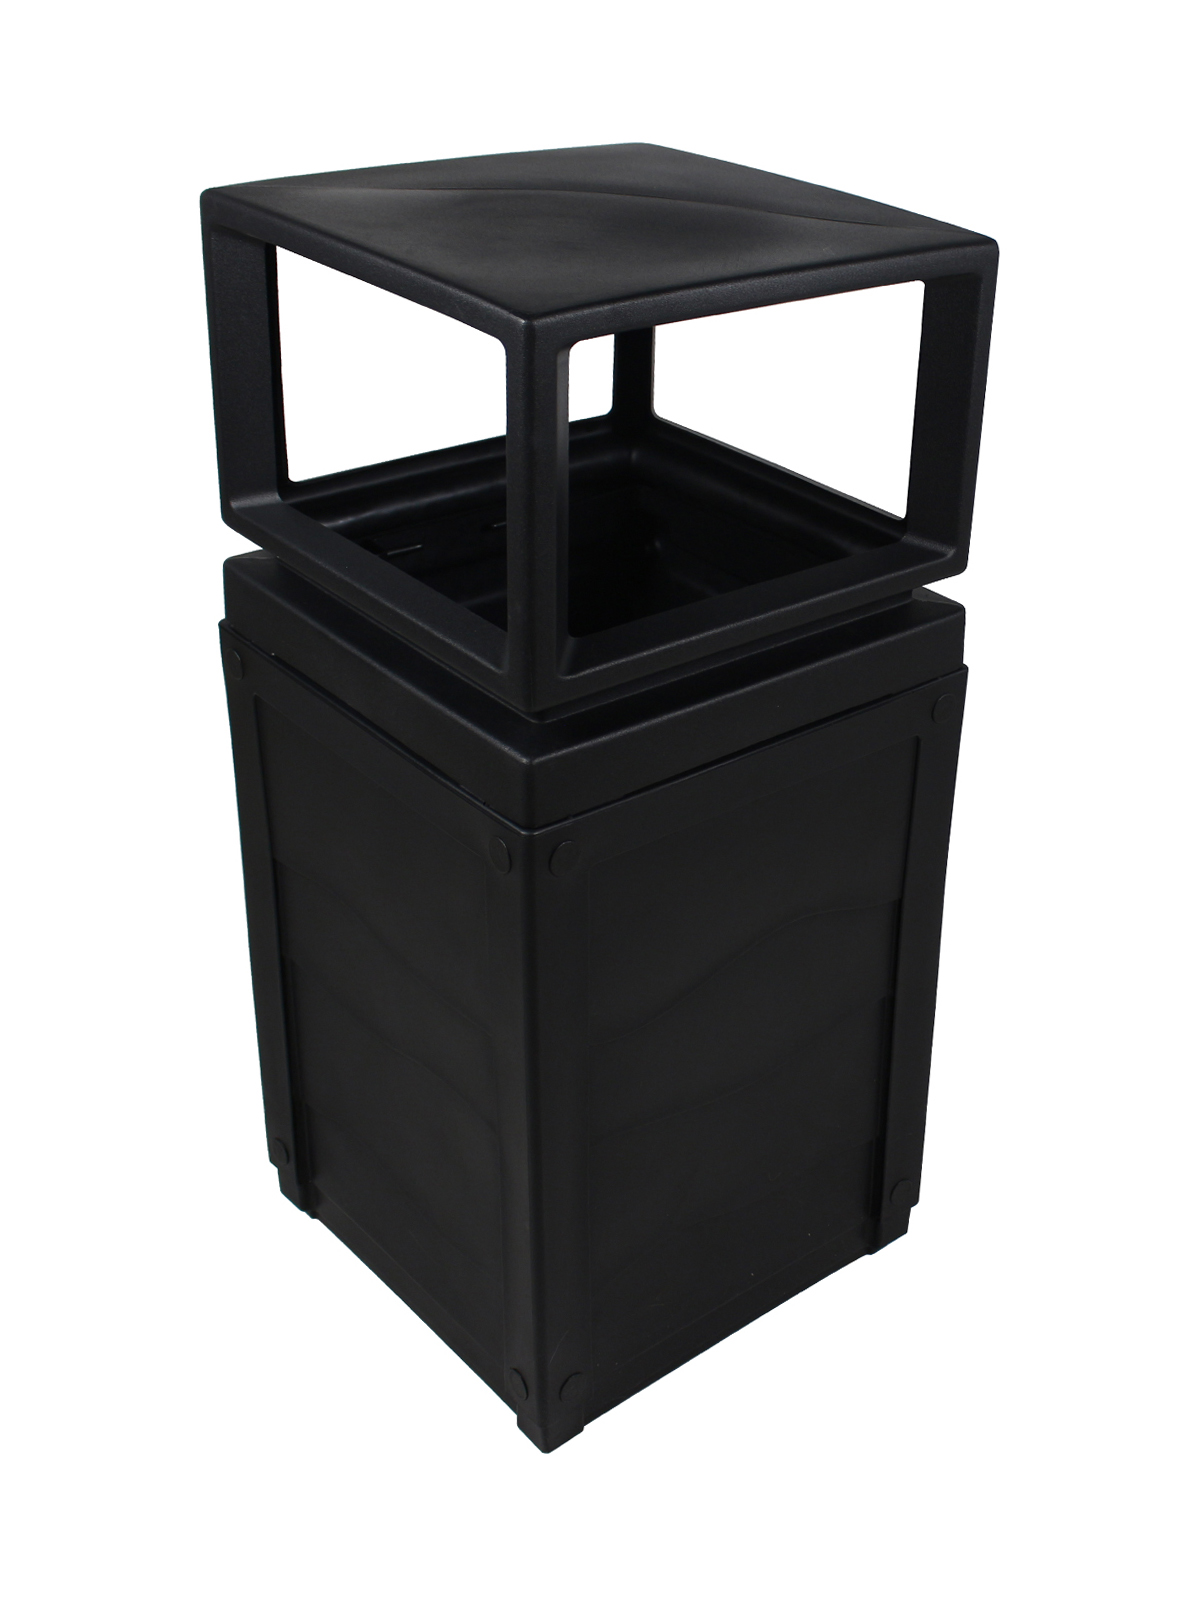 EVOLVE - Unit - Cube Canopy - Full - Black